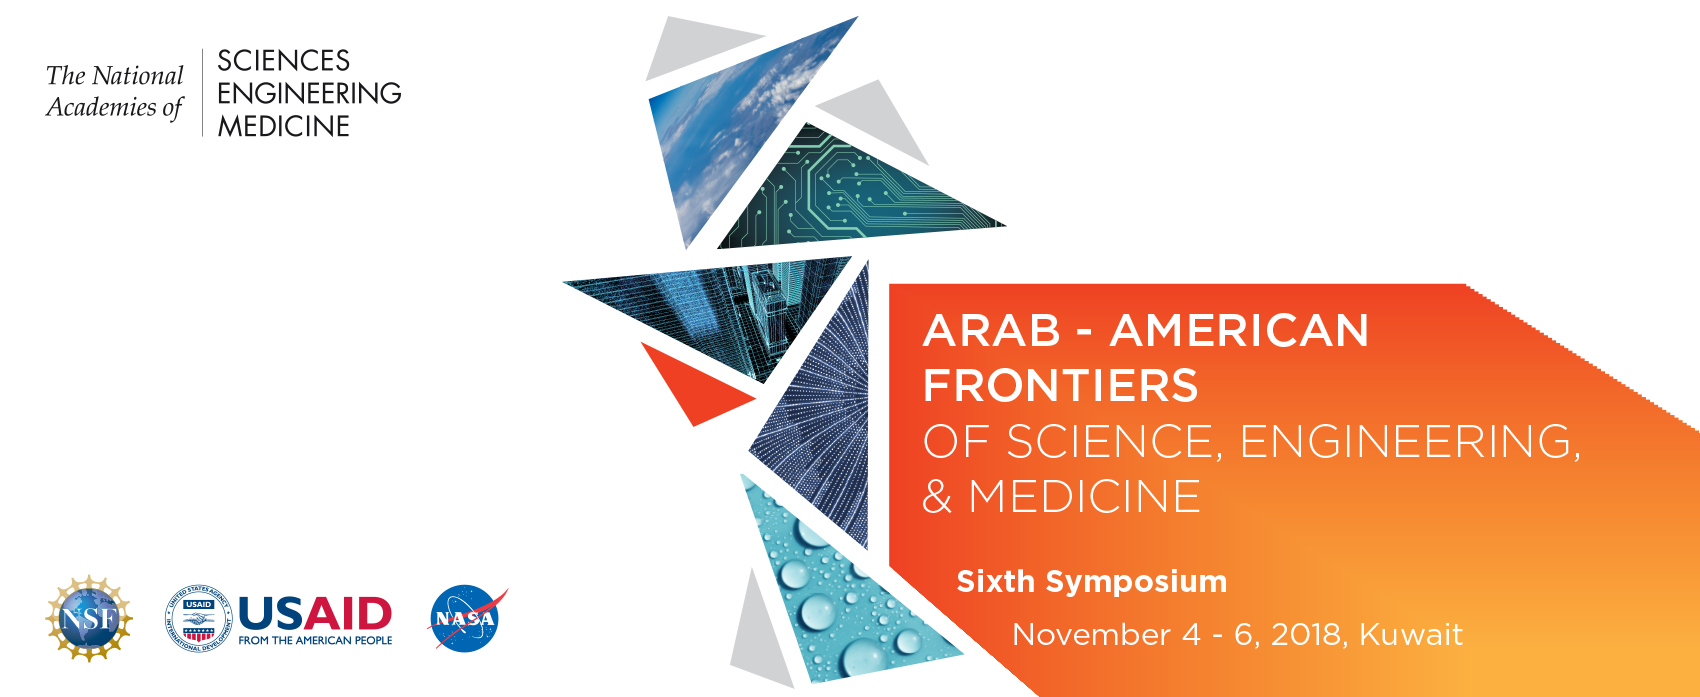 Arab American Frontiers of Science, Engineering & Medicine